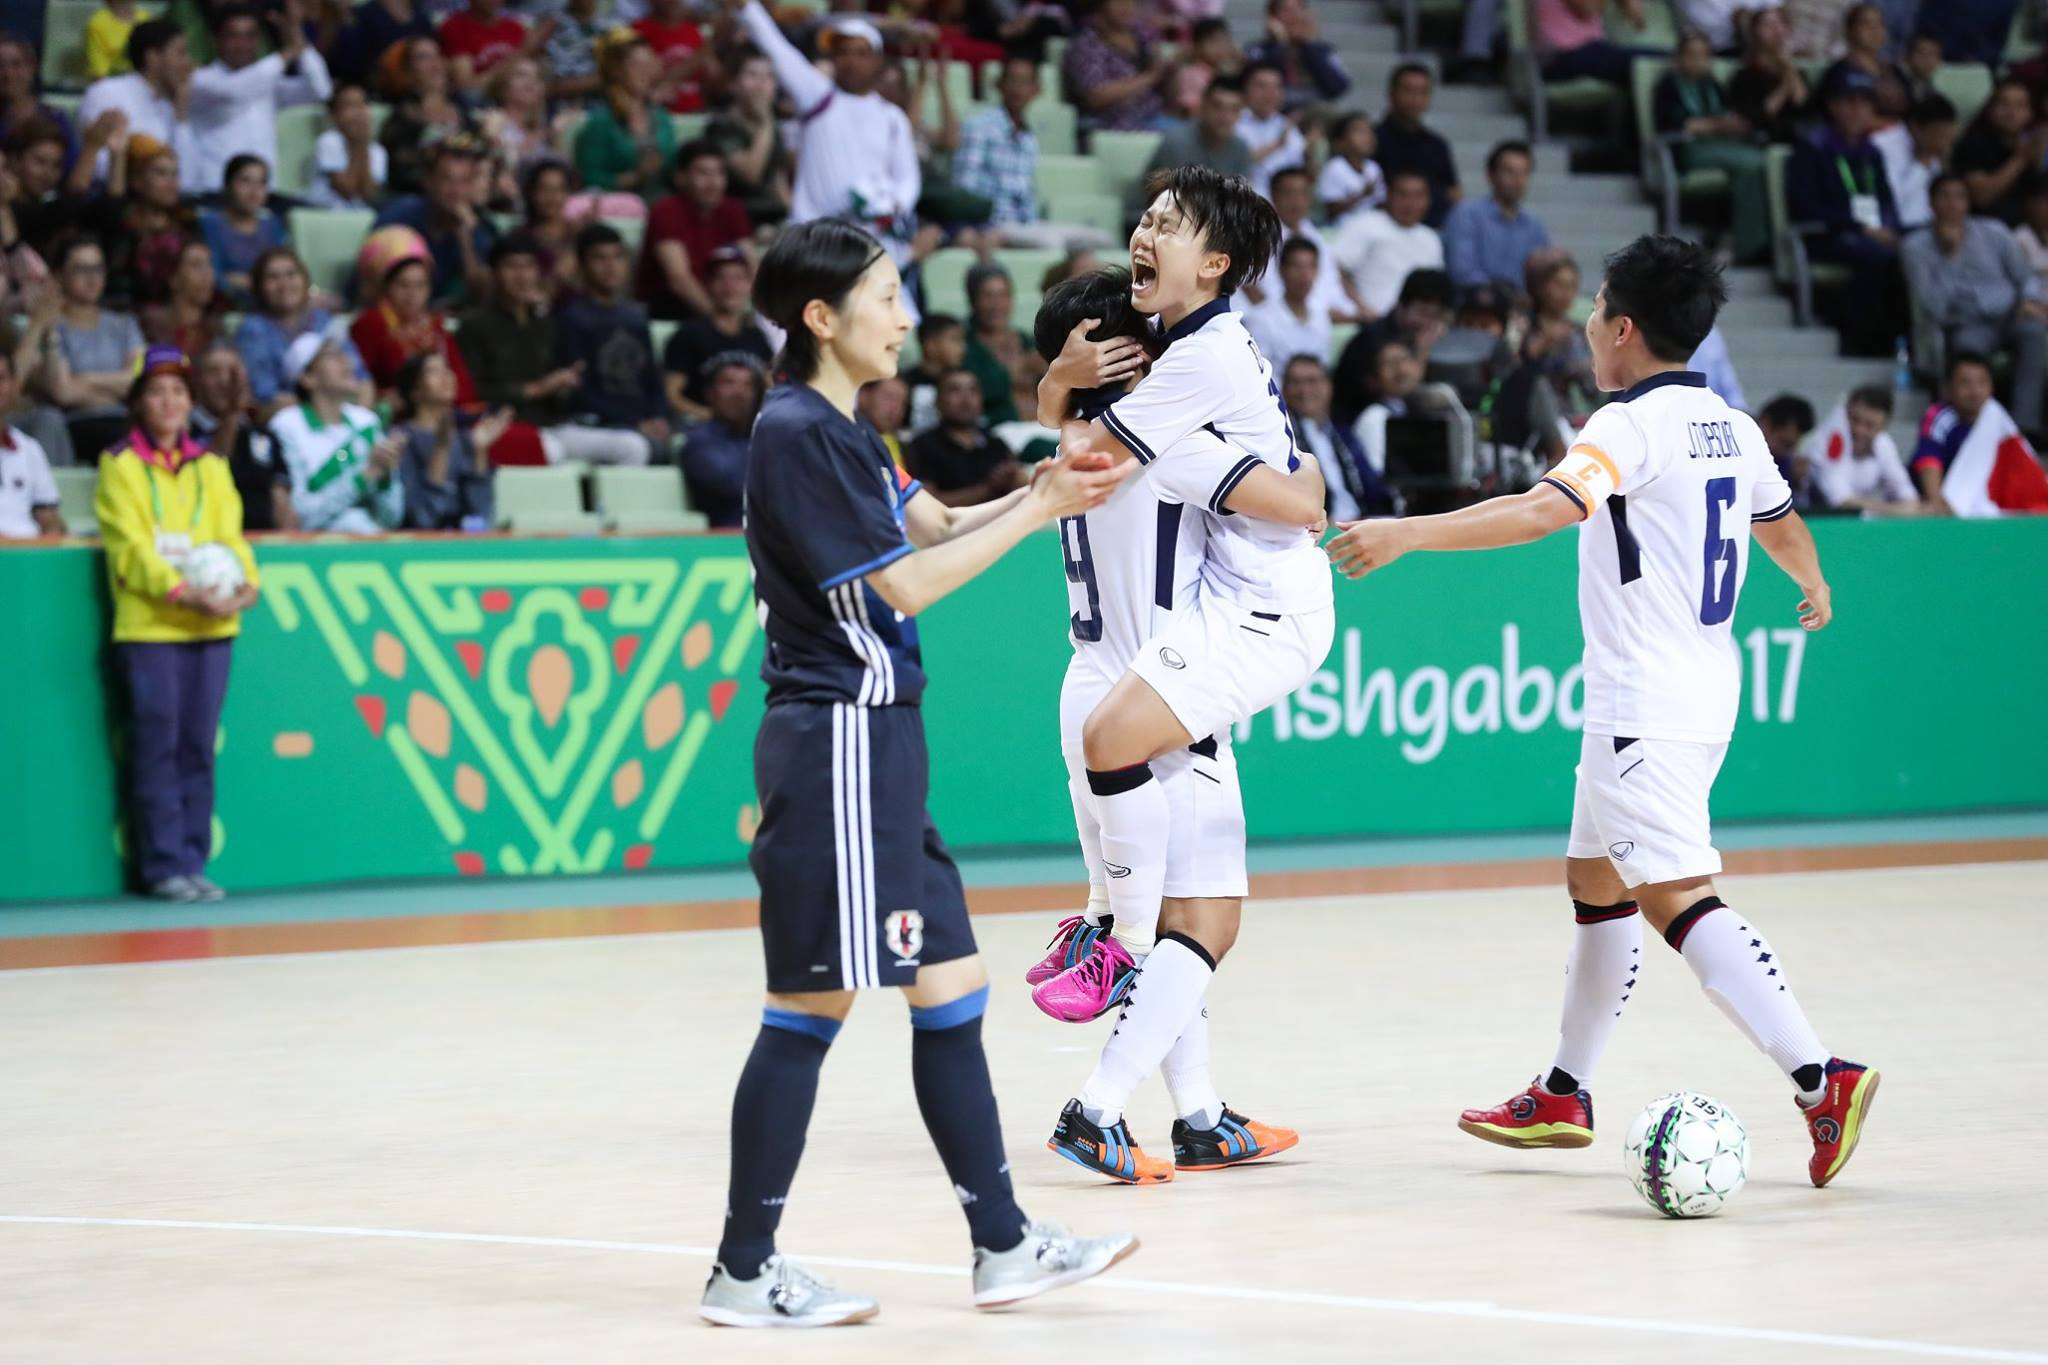 Thailand beat Japan 3-1 in the women's futsal final on day 10 of the 2017 Asian Indoor and Martial Arts Games ©Ashgabat 2017/Facebook